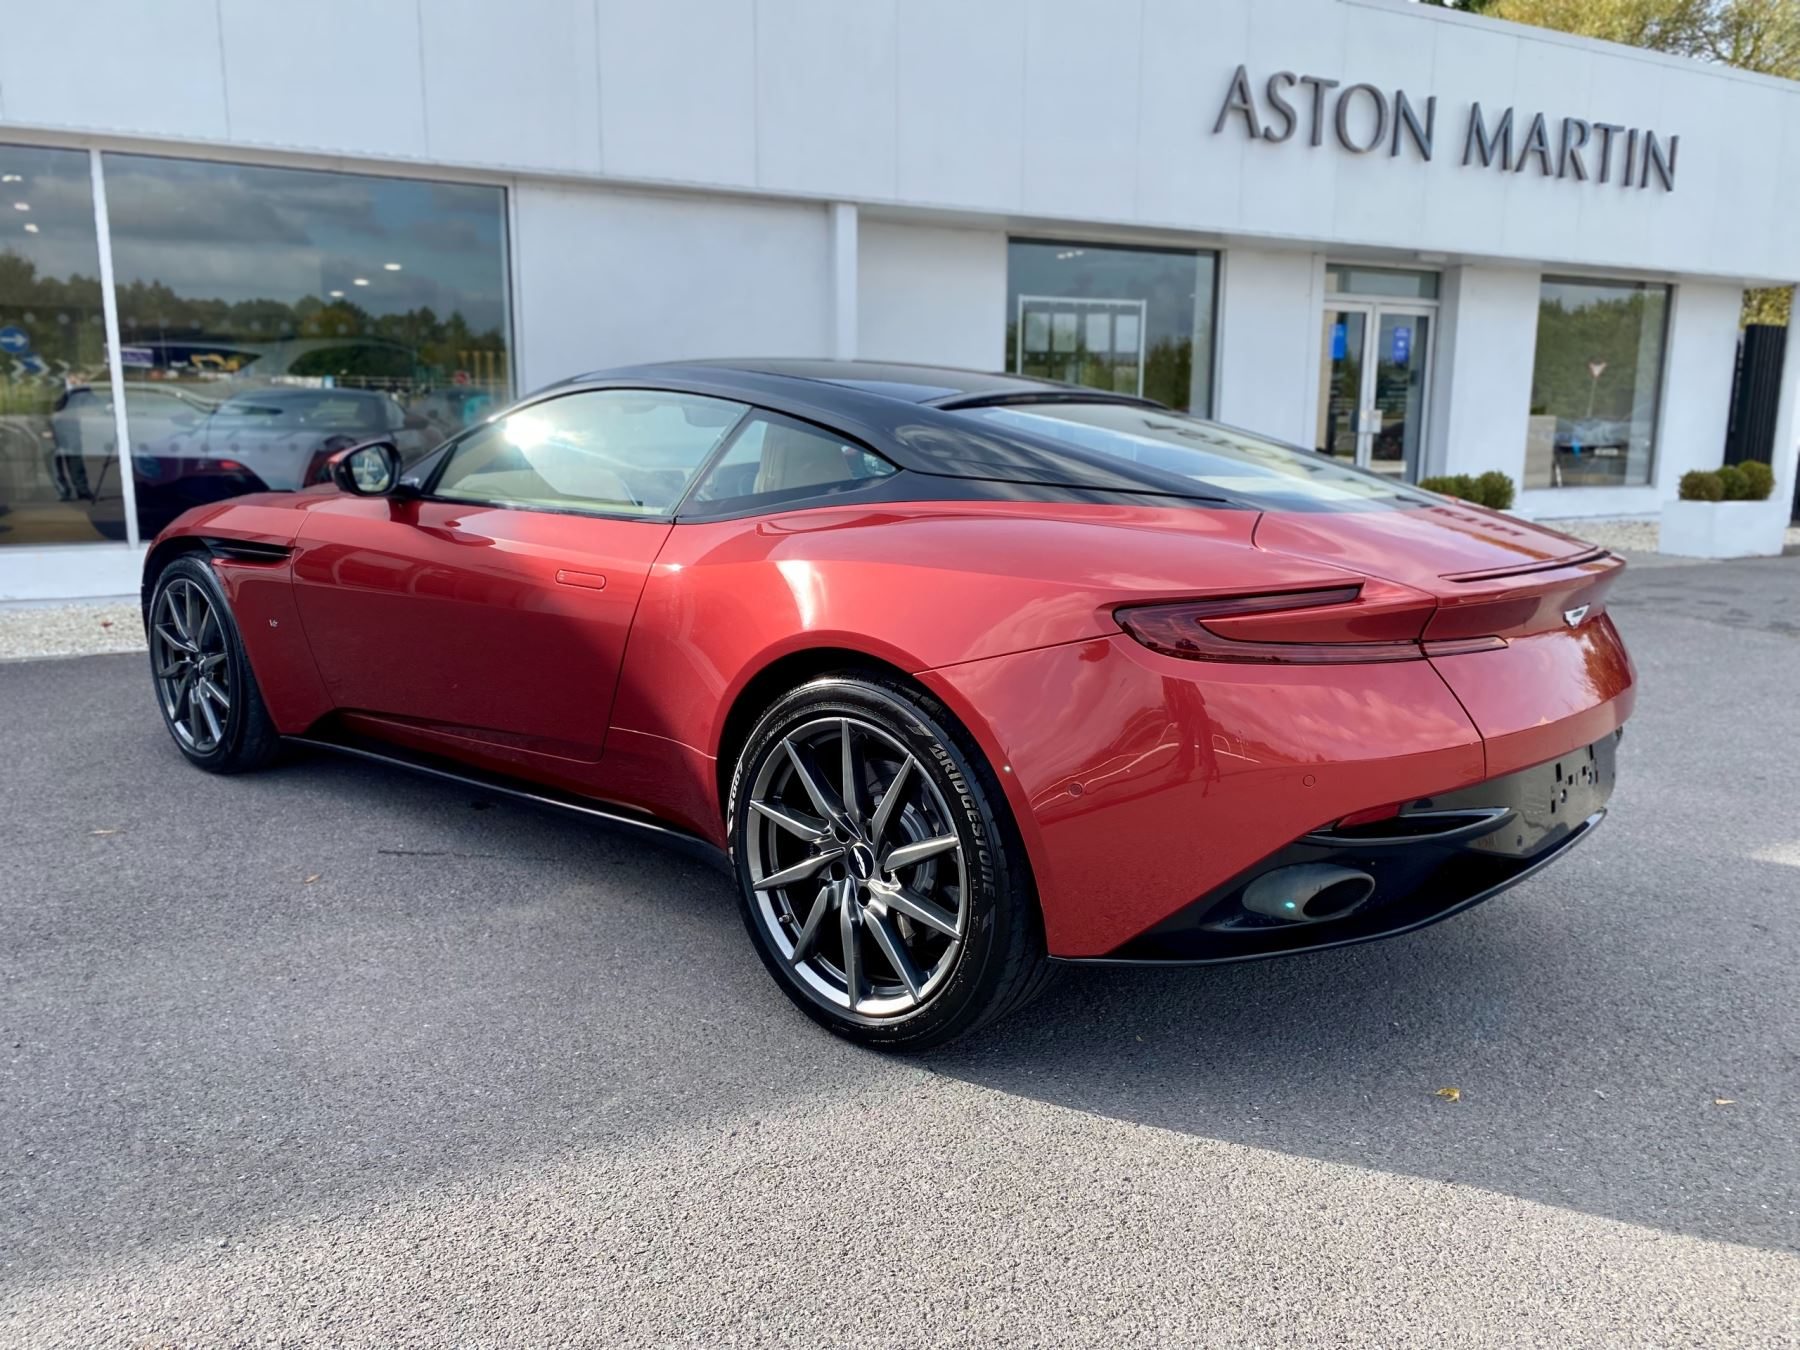 Aston Martin DB11 V12 Launch Edition Coupe. Bang & Olufsen Beosound Audio. Black brake calipers. Ventilated Seats image 5